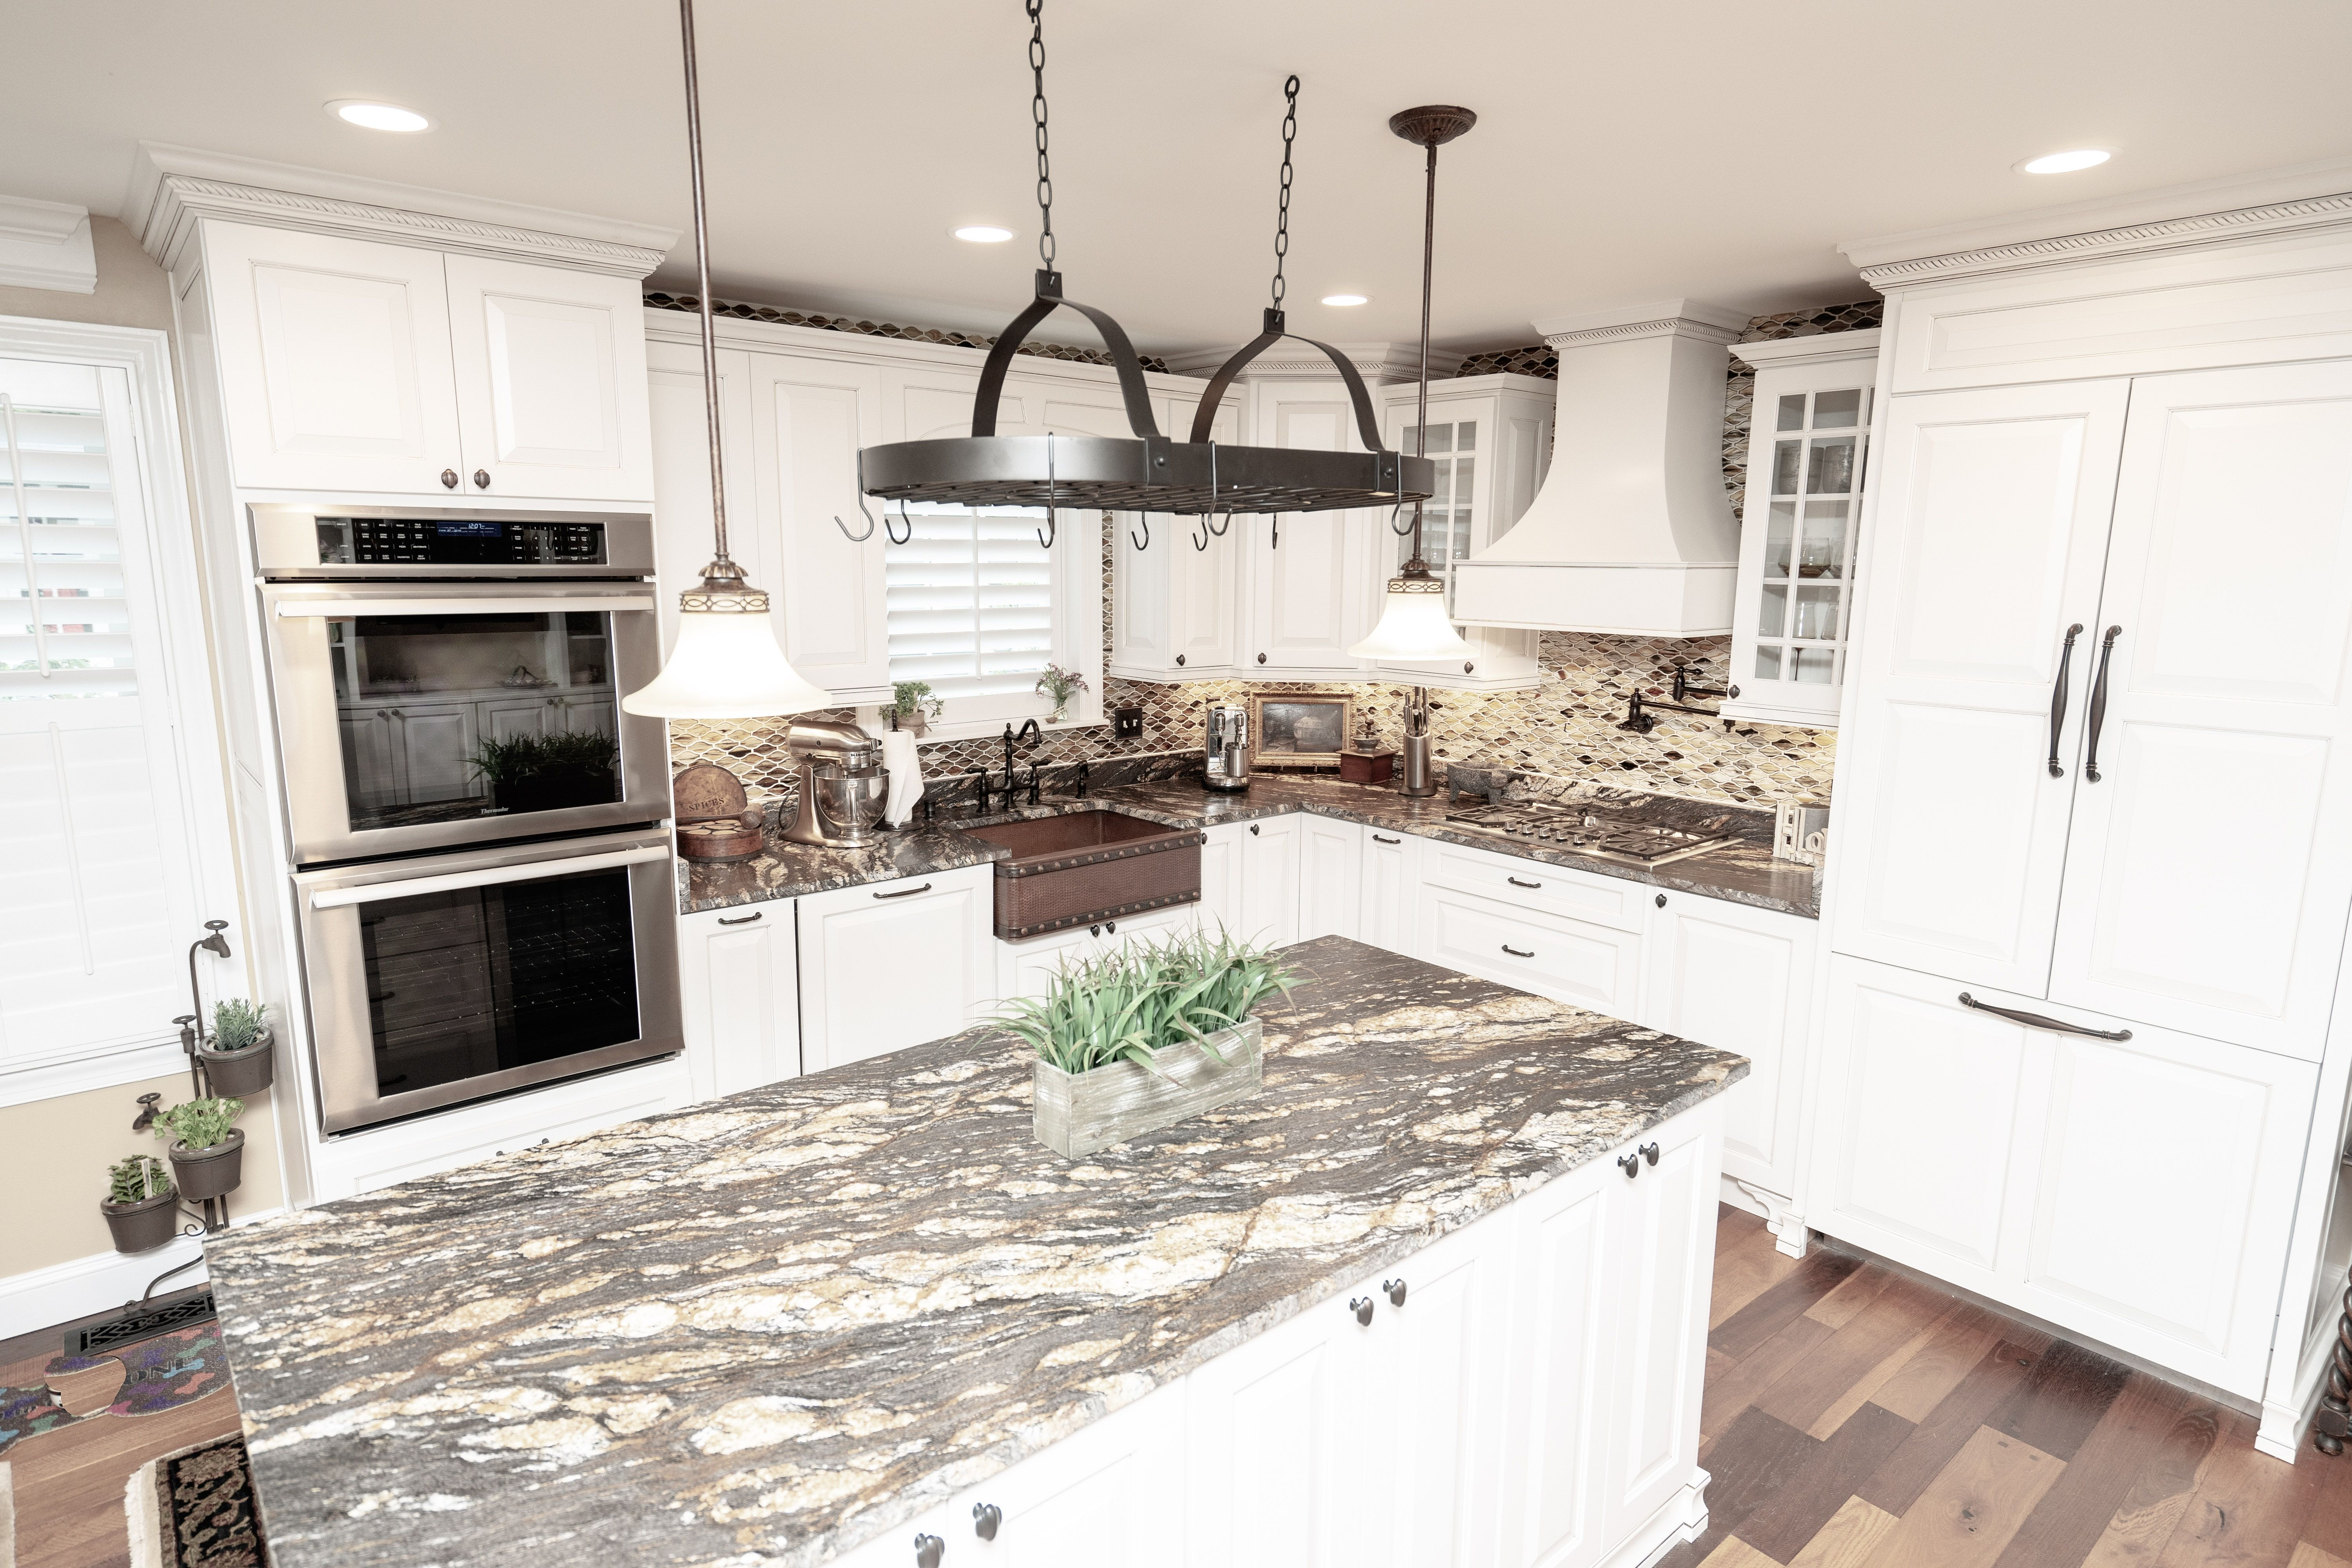 Kitchen Remodeling Arlington Va Bath Remodeling Usa Cabinet Store Country Kitchen Decor Kitchen Decor Kitchen Bar Stools